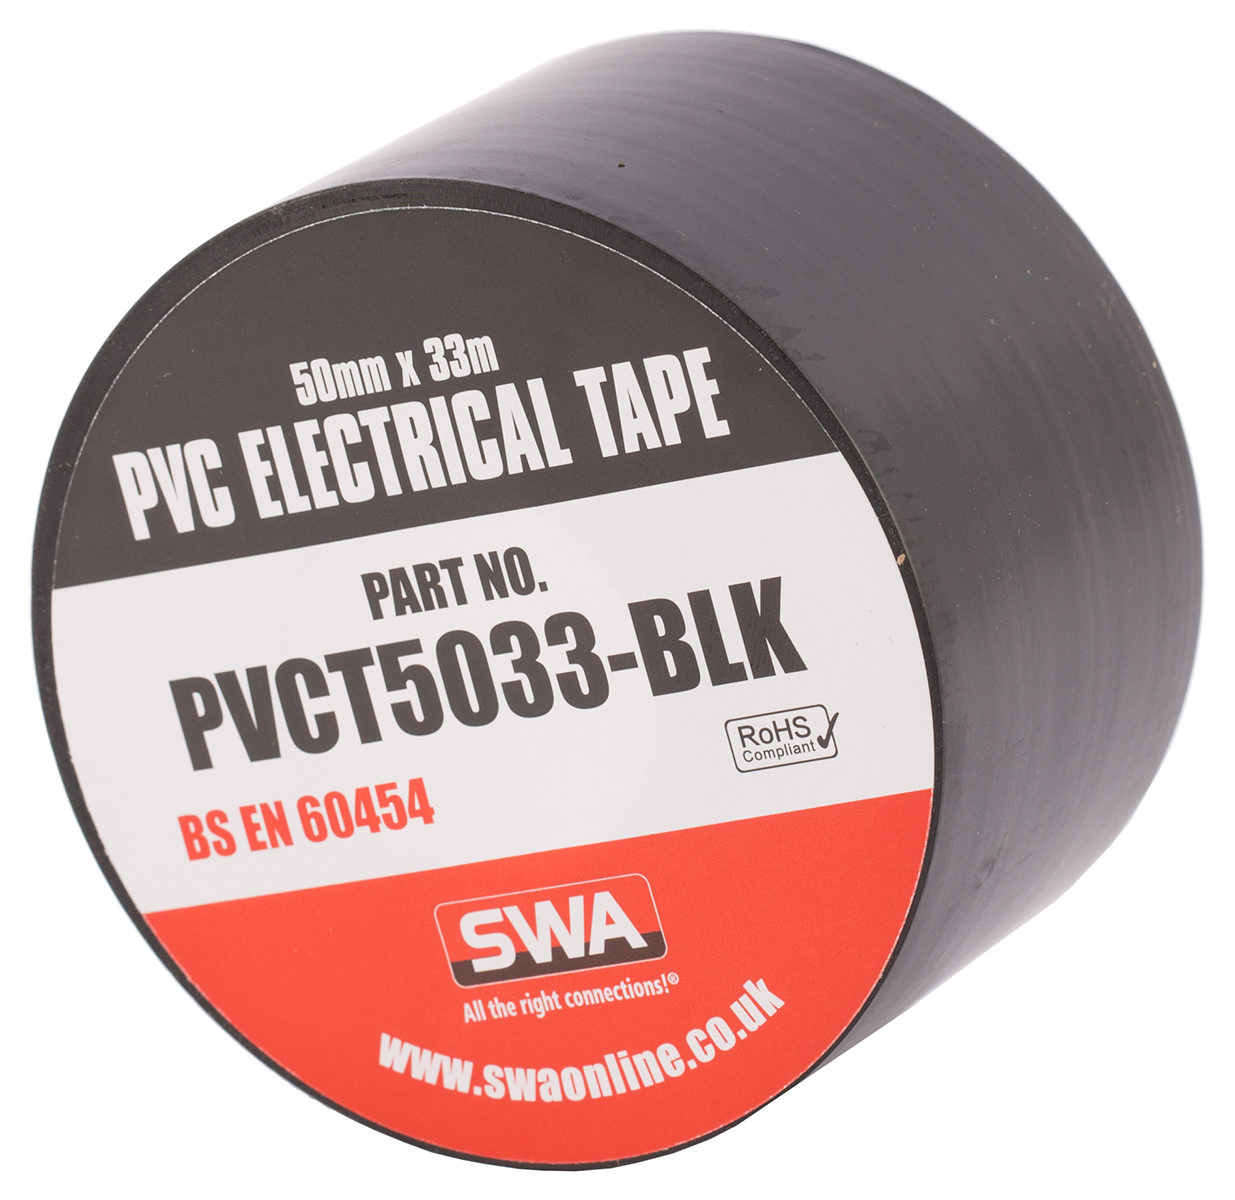 SWA PVCT5033-BLK Electrical Tape Blk